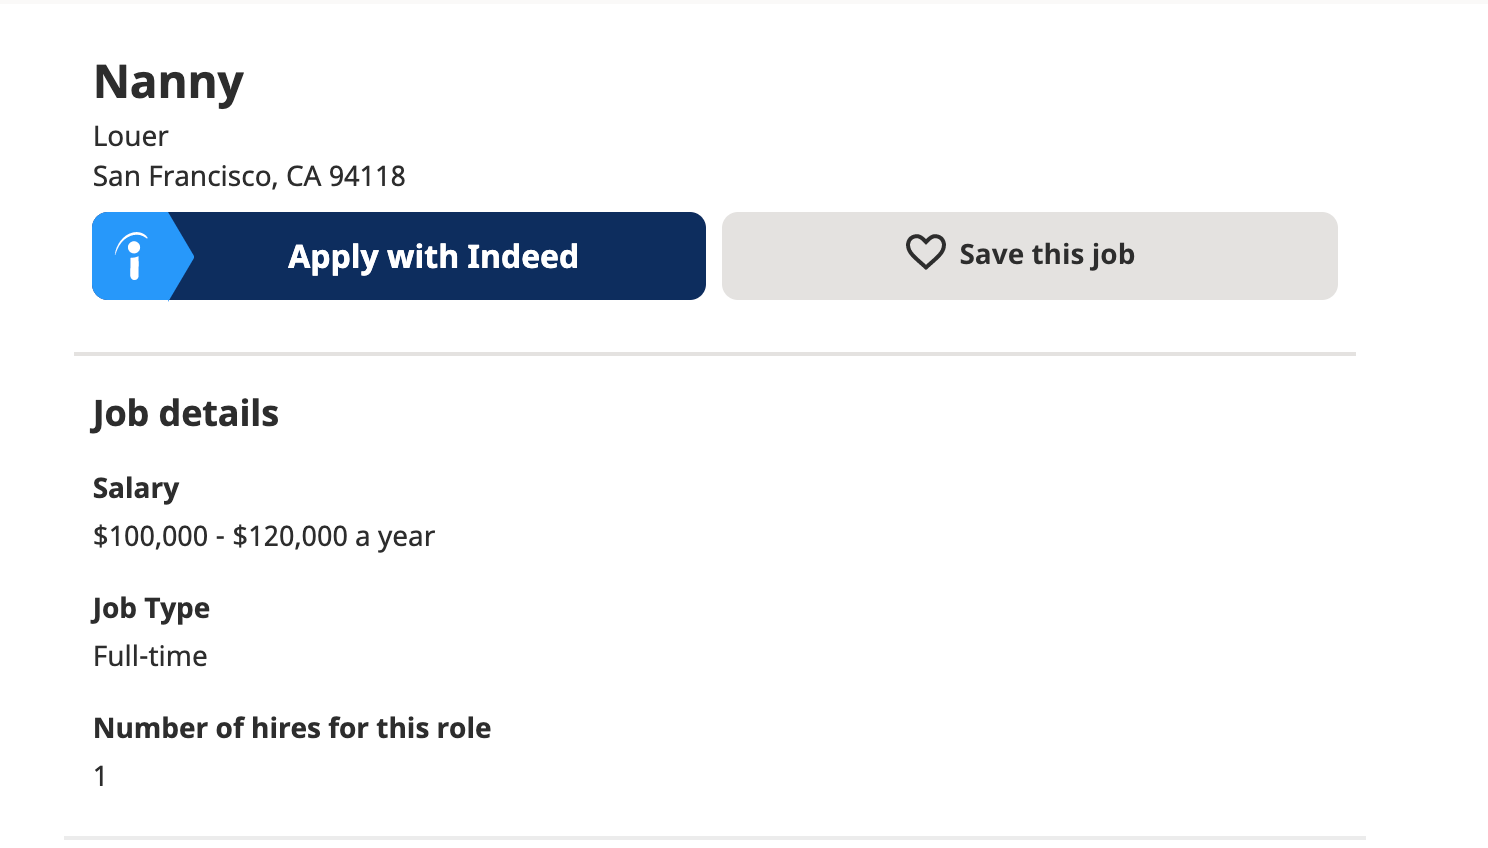 Screenshot of part of the Indeed posting. Nanny / Louer / San Francisco, CA 94118. Two buttons: Apply with Indeed and Save This Job. Job details—Salary: $100,000-$200,000 a year. Job type: Full-time. Number of hires for this role: 1.